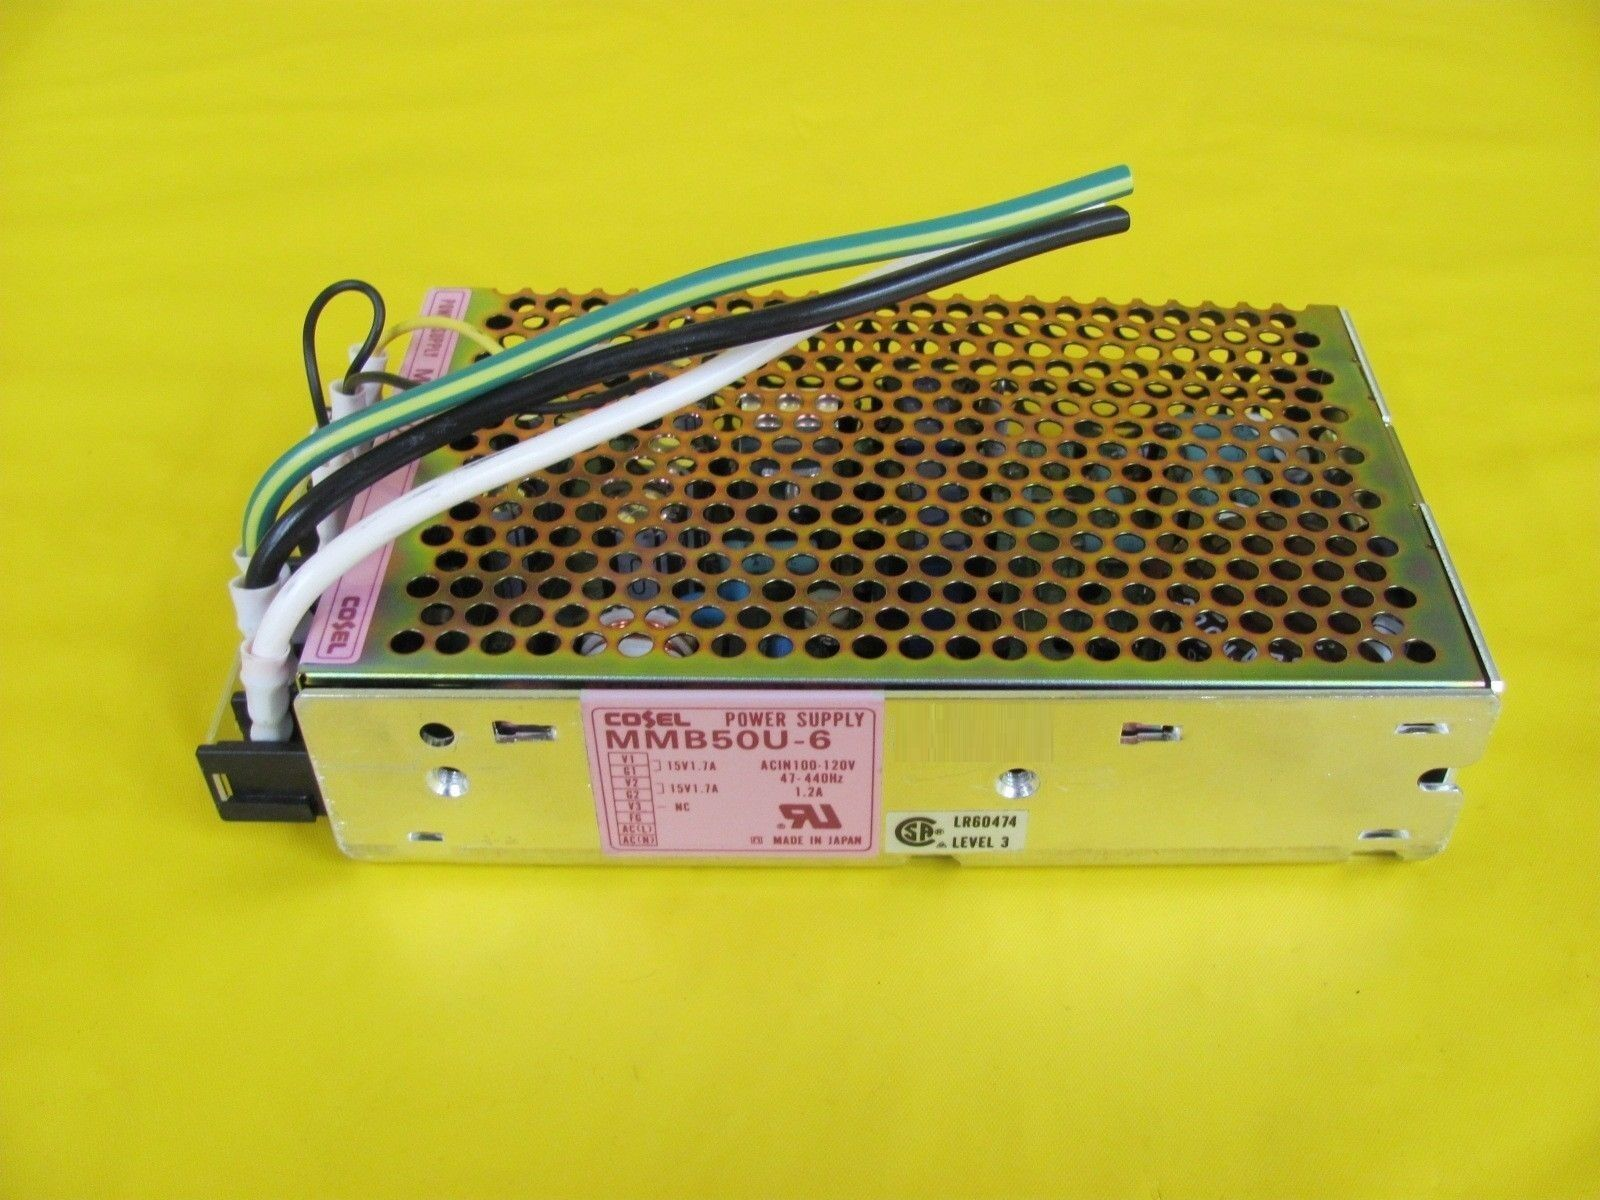 Sanken Electric MLT-DCBOX5 Power Supply Assembly MMB50U-6 TEL Unity II Used